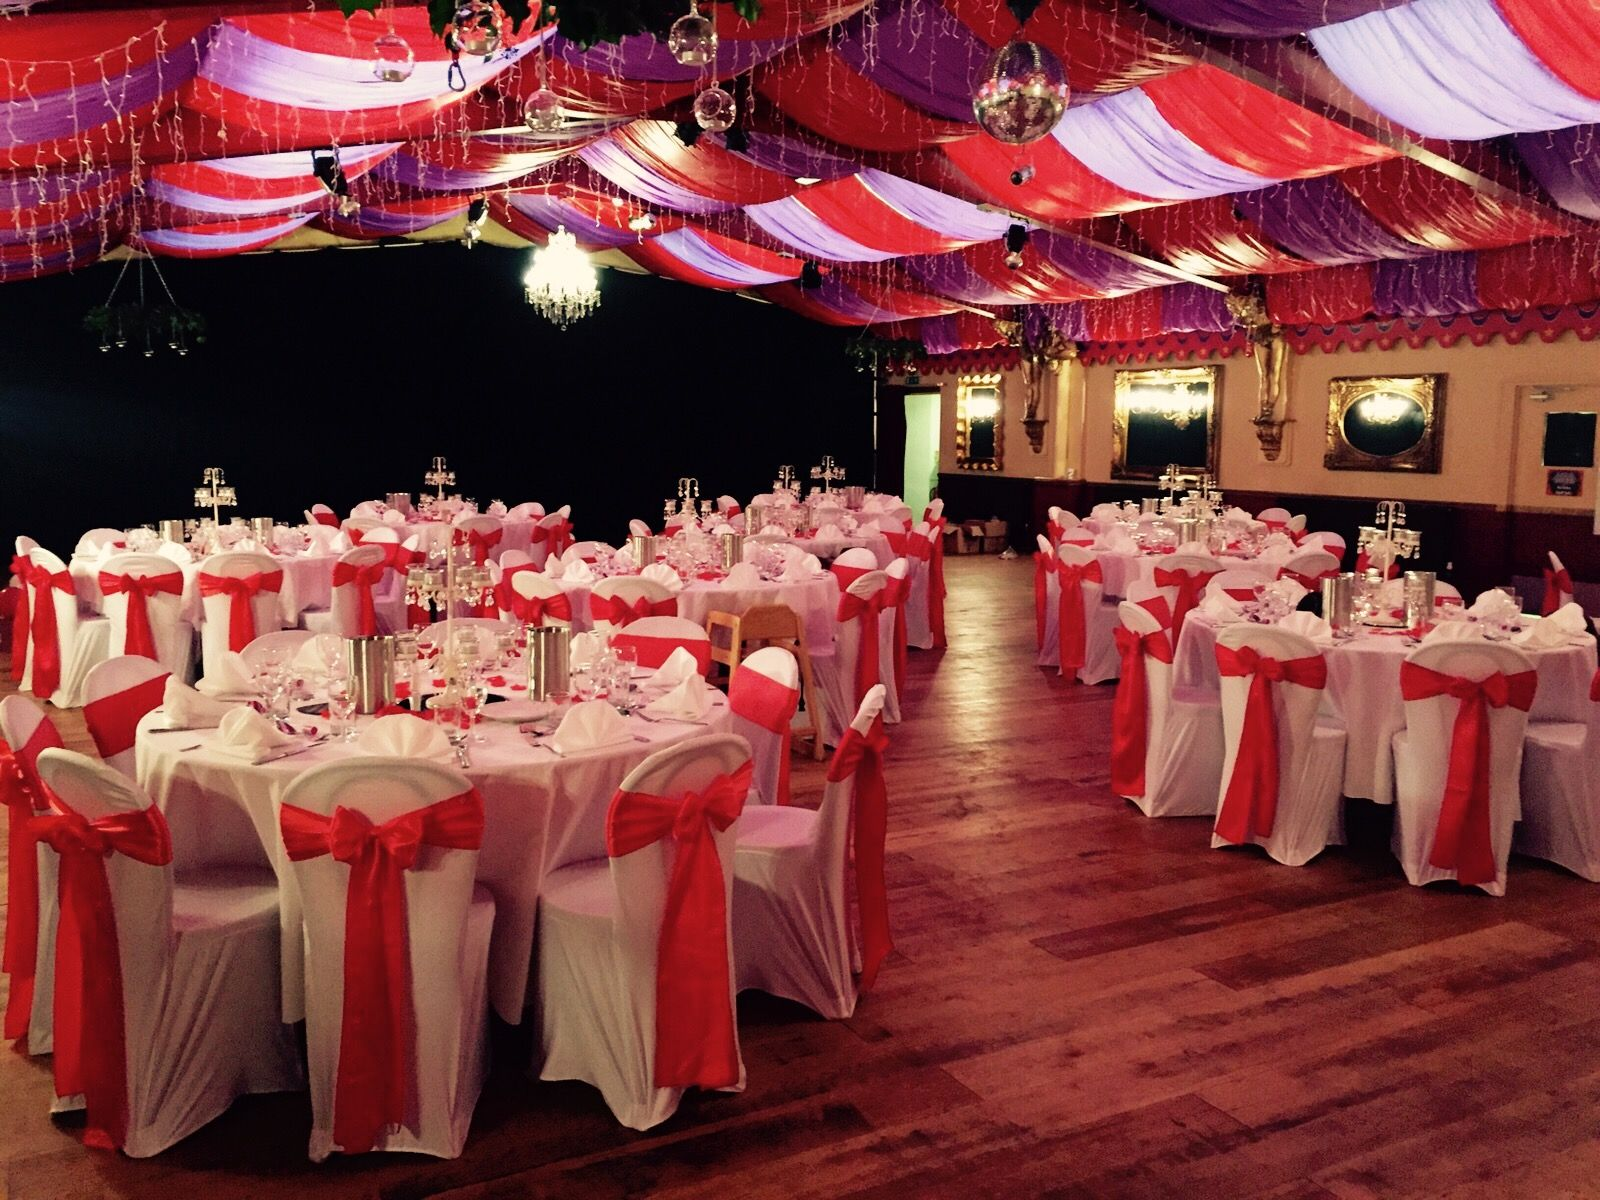 wedding chair covers yeovil tommy bahama high boy beach bjs and sashes at wookey hole decor by elegant